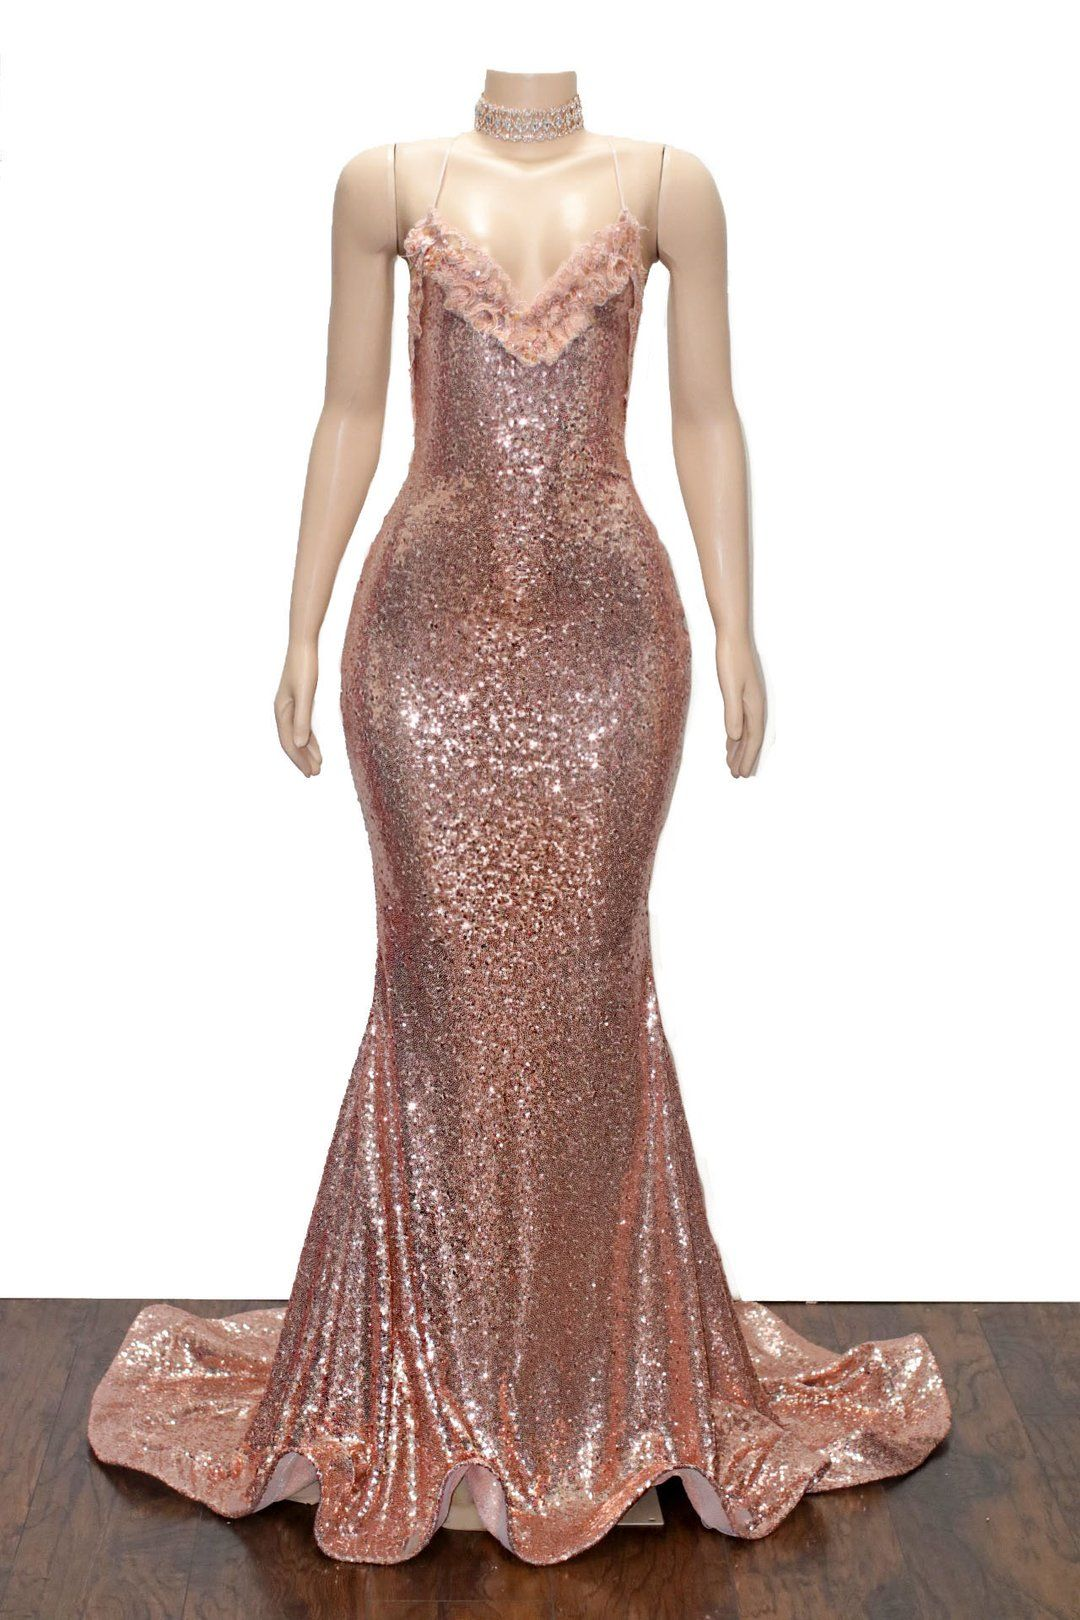 Pin by nina akababygirl on prom dresses in pinterest prom